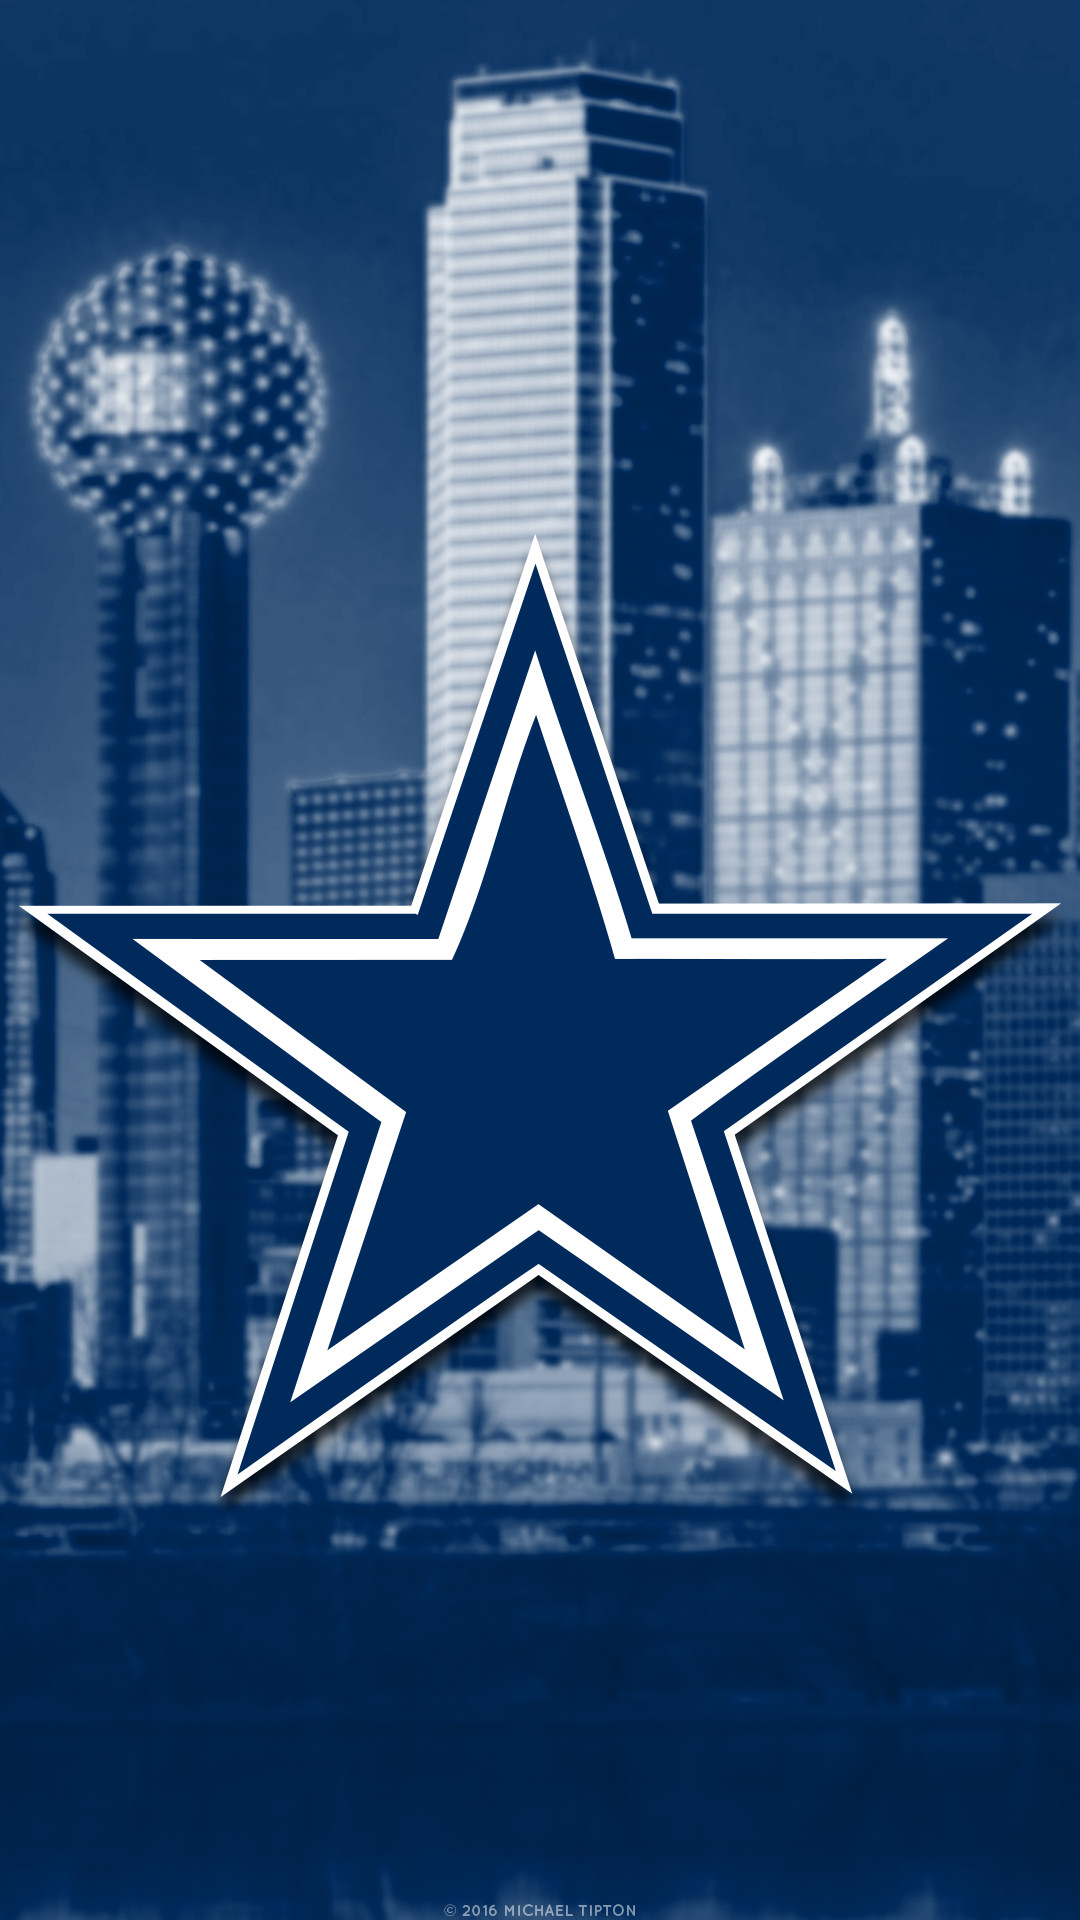 1080x1920 Dallas Cowboys Backgrounds For Desktop - Wallpaper Cave